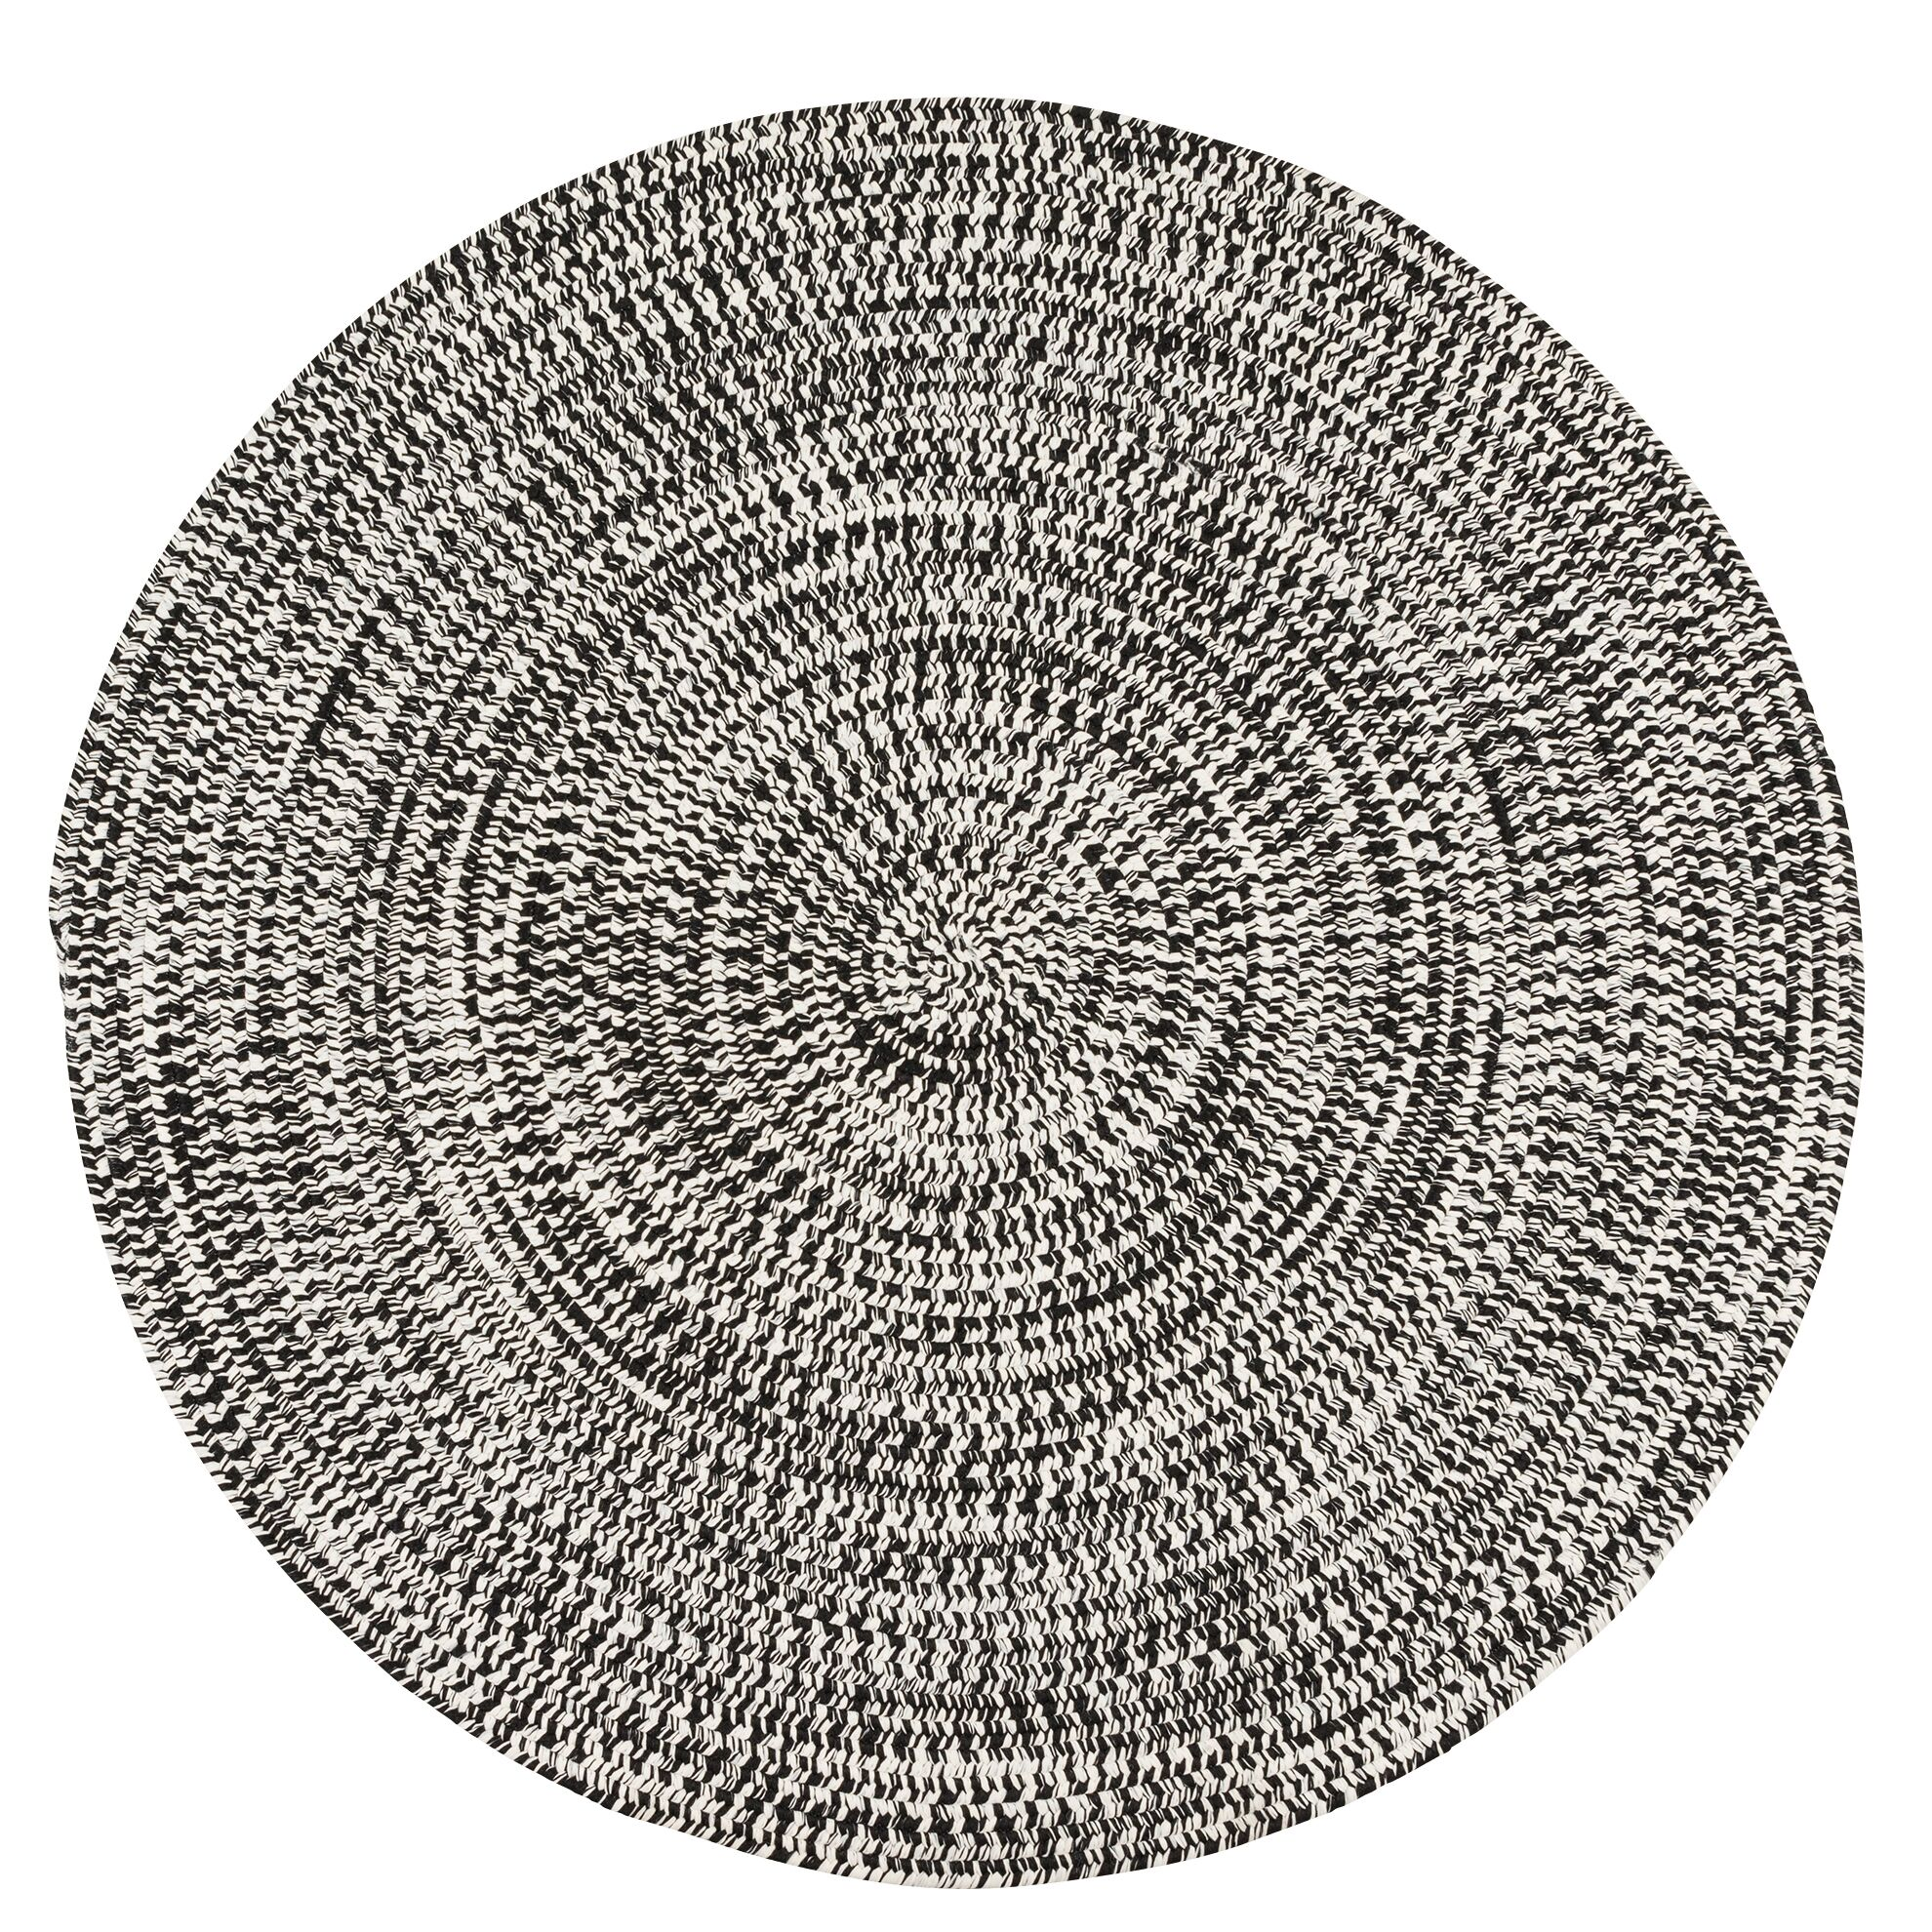 Longe Tweed Hand-Braided Electric Black Indoor/Outdoor Area Rug Rug Size: Round 8'